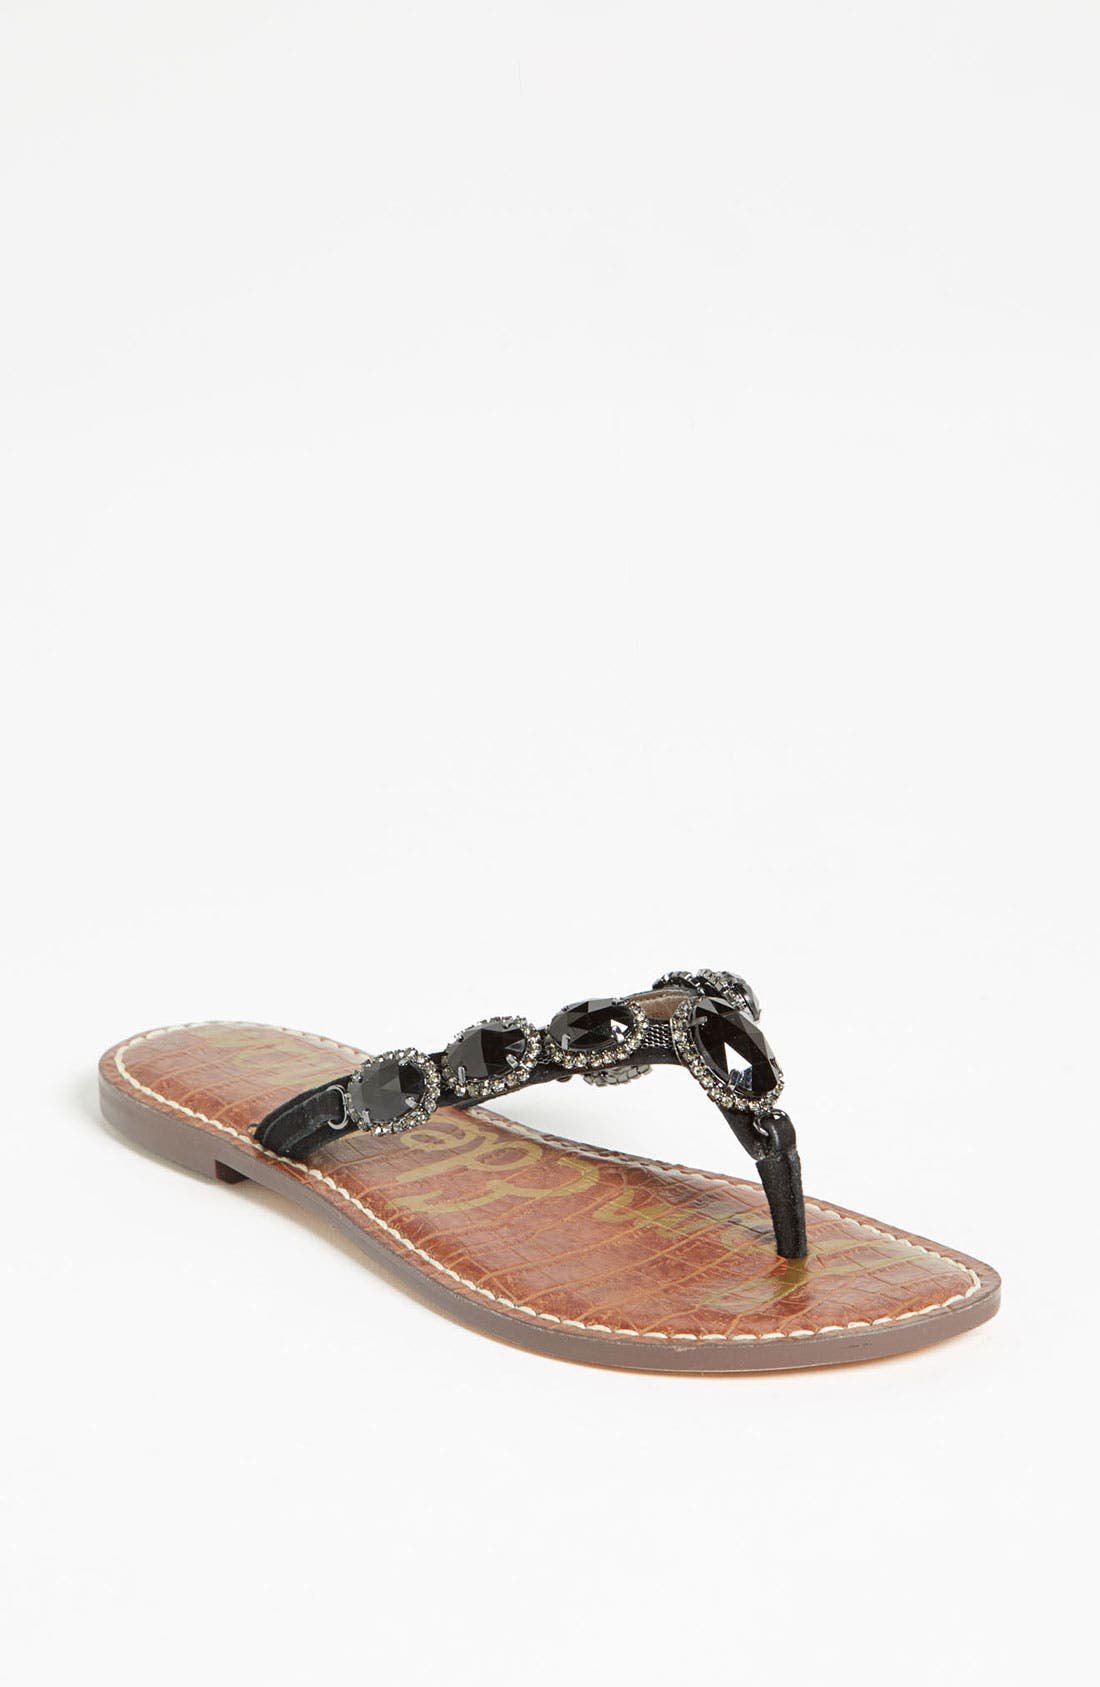 Alternate Image 1 Selected - Sam Edelman 'Gracelyn' Sandal